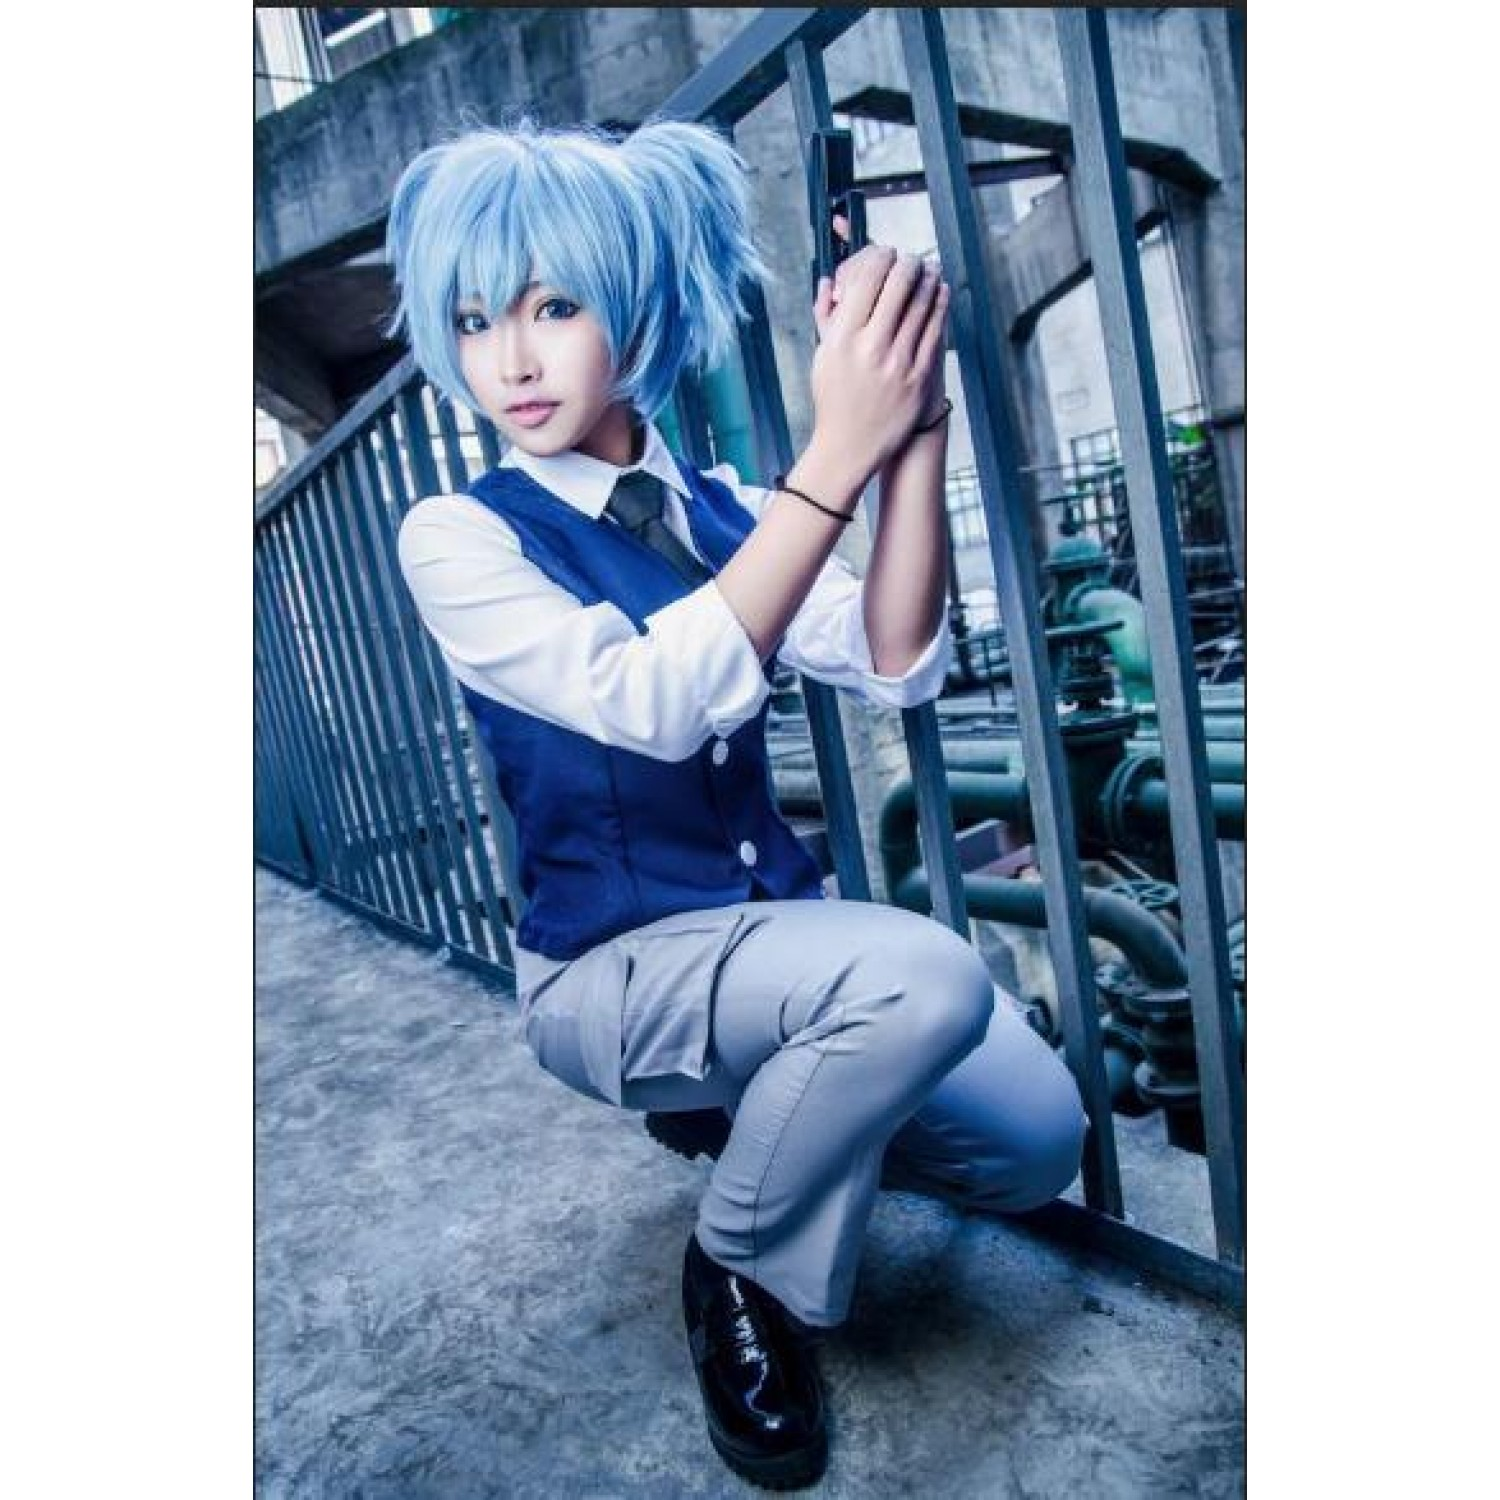 Assassination Classroom Shiota Nagisa Blue Female Cosplay Costume